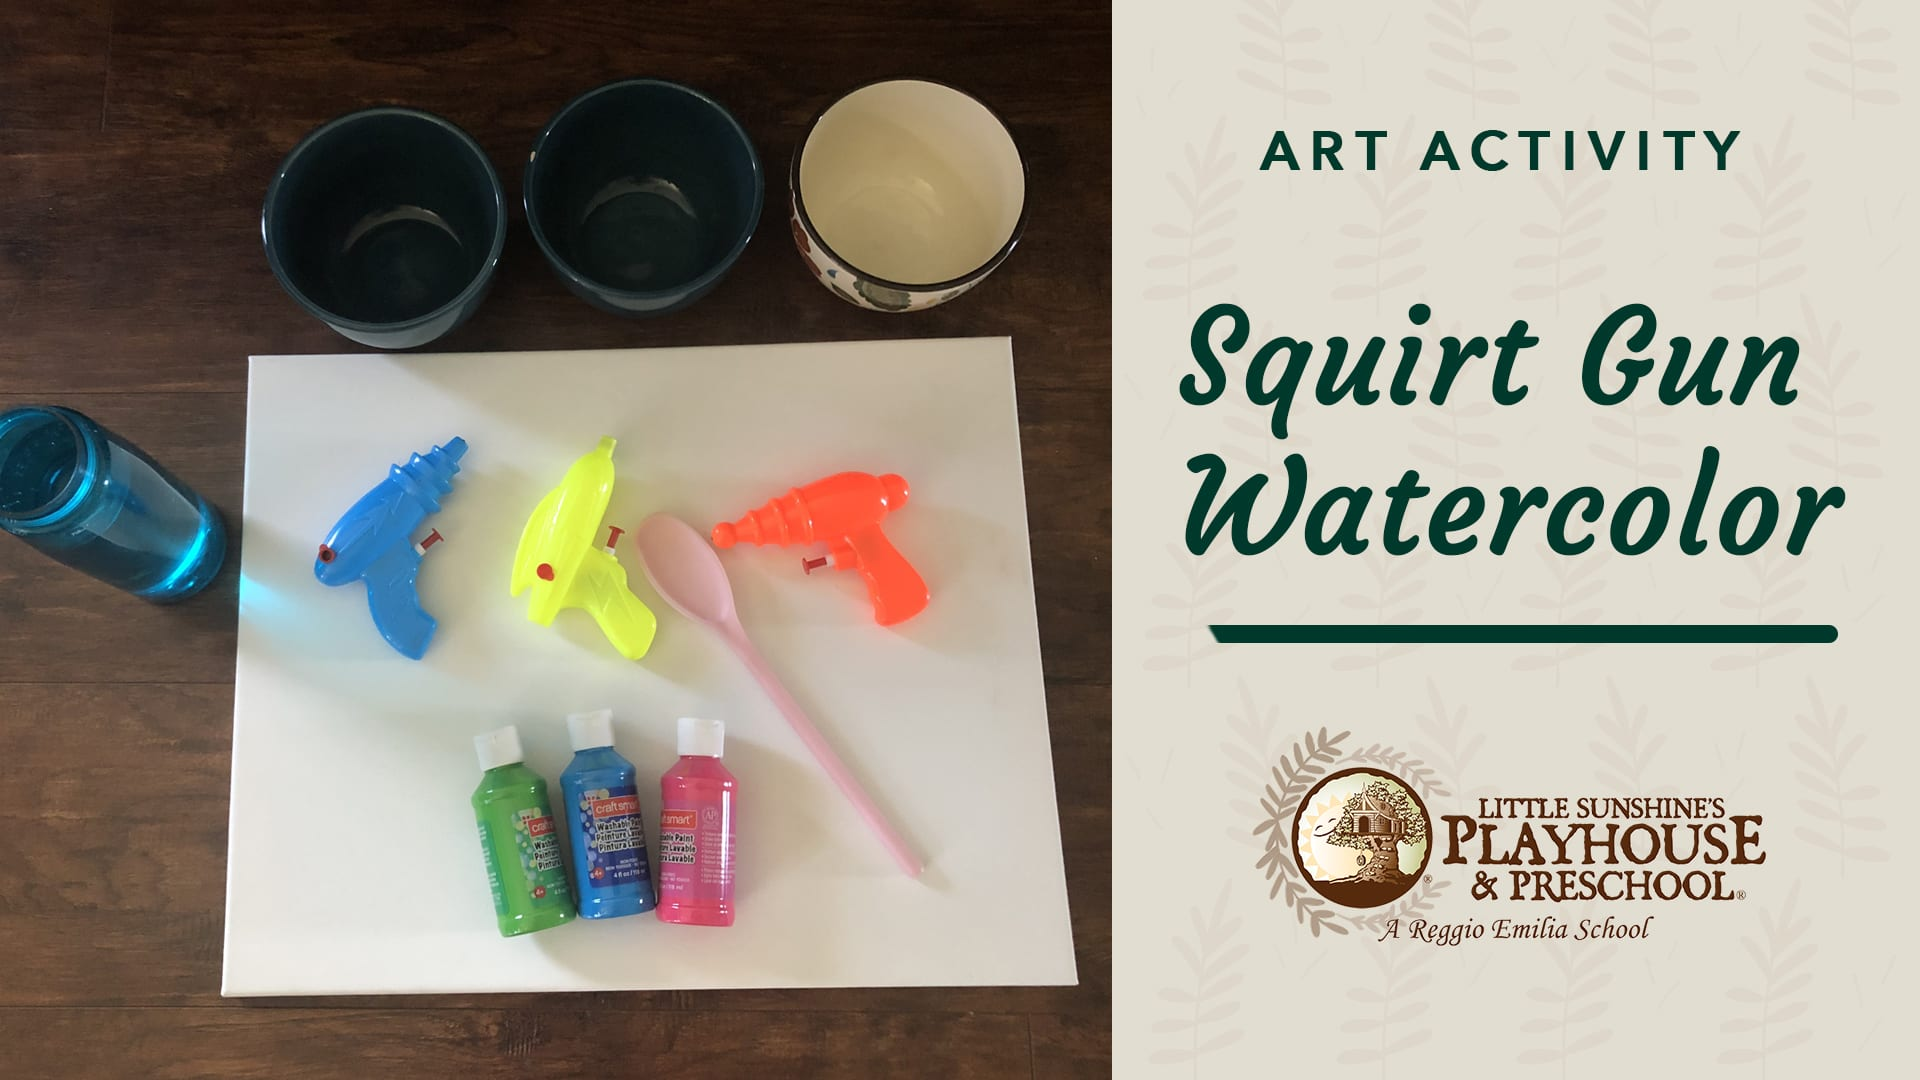 Squirt Gun Watercolor Art Activity